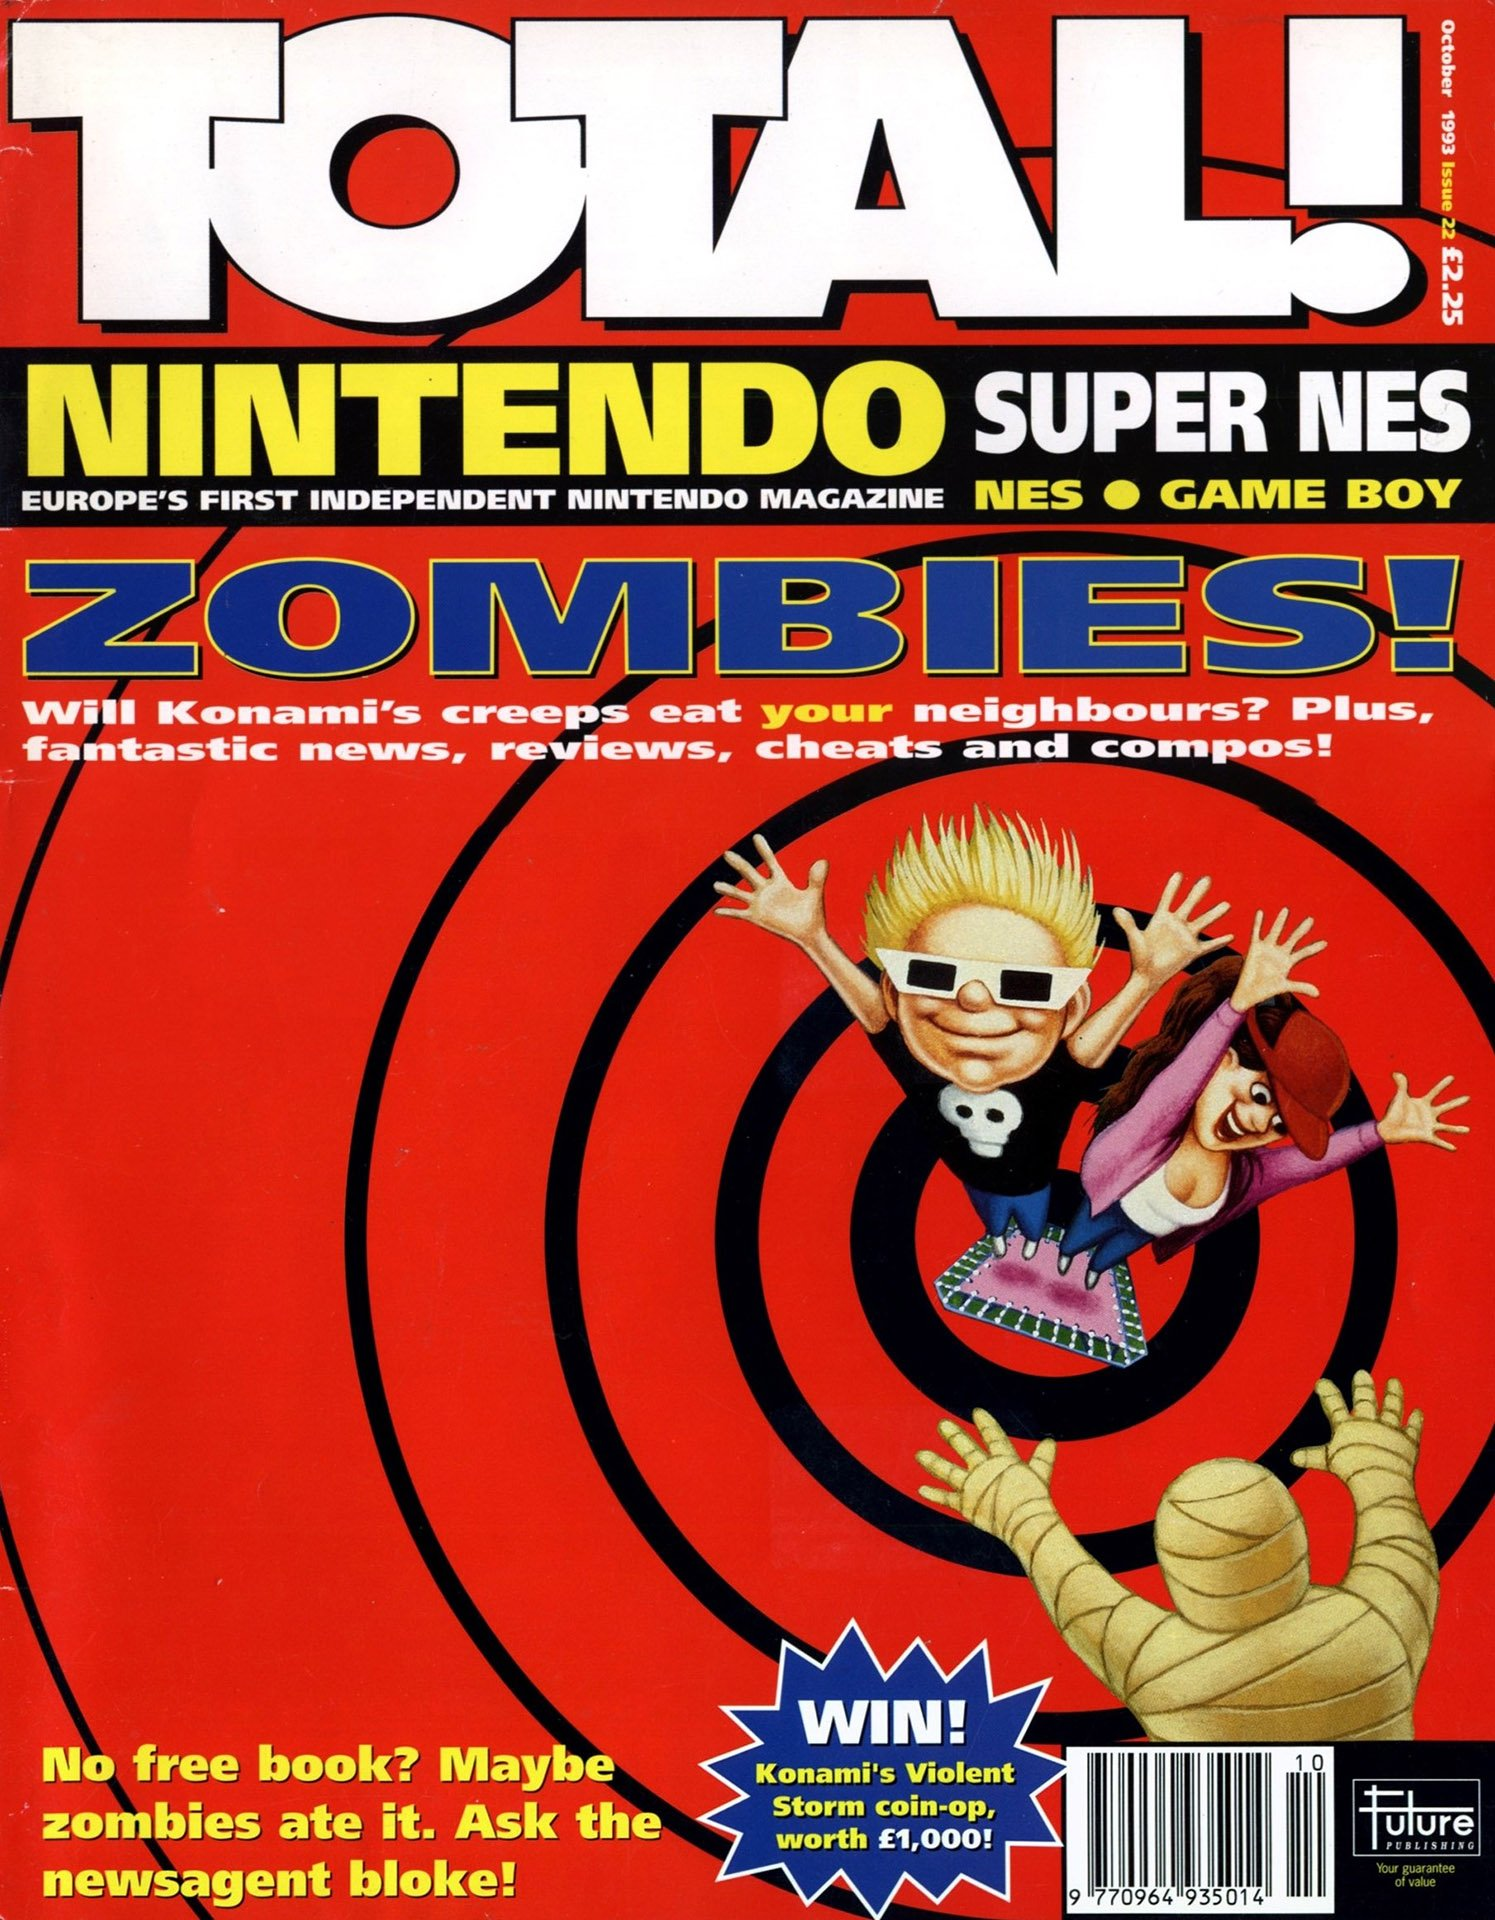 Total! Issue 22 (October 1993)